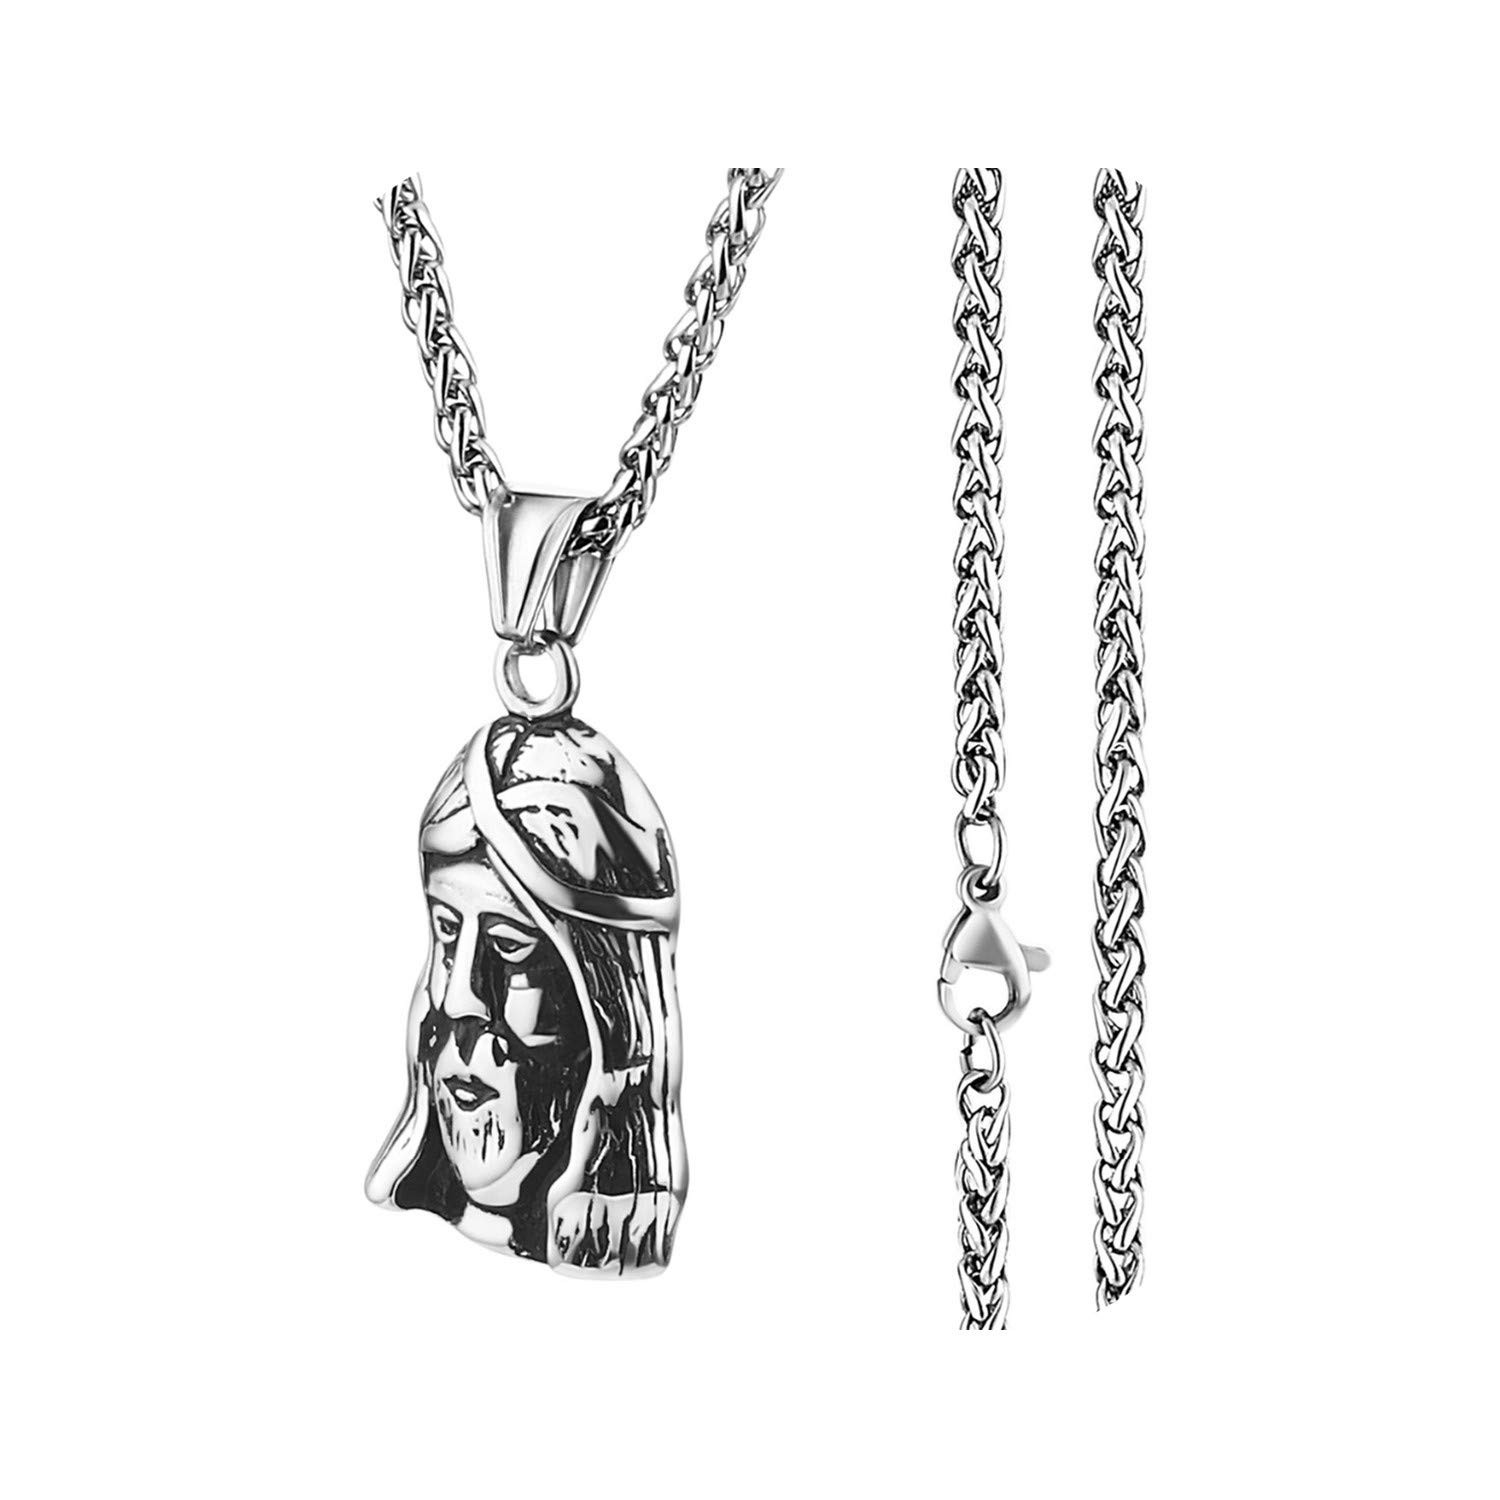 Petite-Bub-Scarlet Male Stainless Steel Link Chain Round Circle Cross Pendant Necklace for Men Silver Color Statement Necklaces